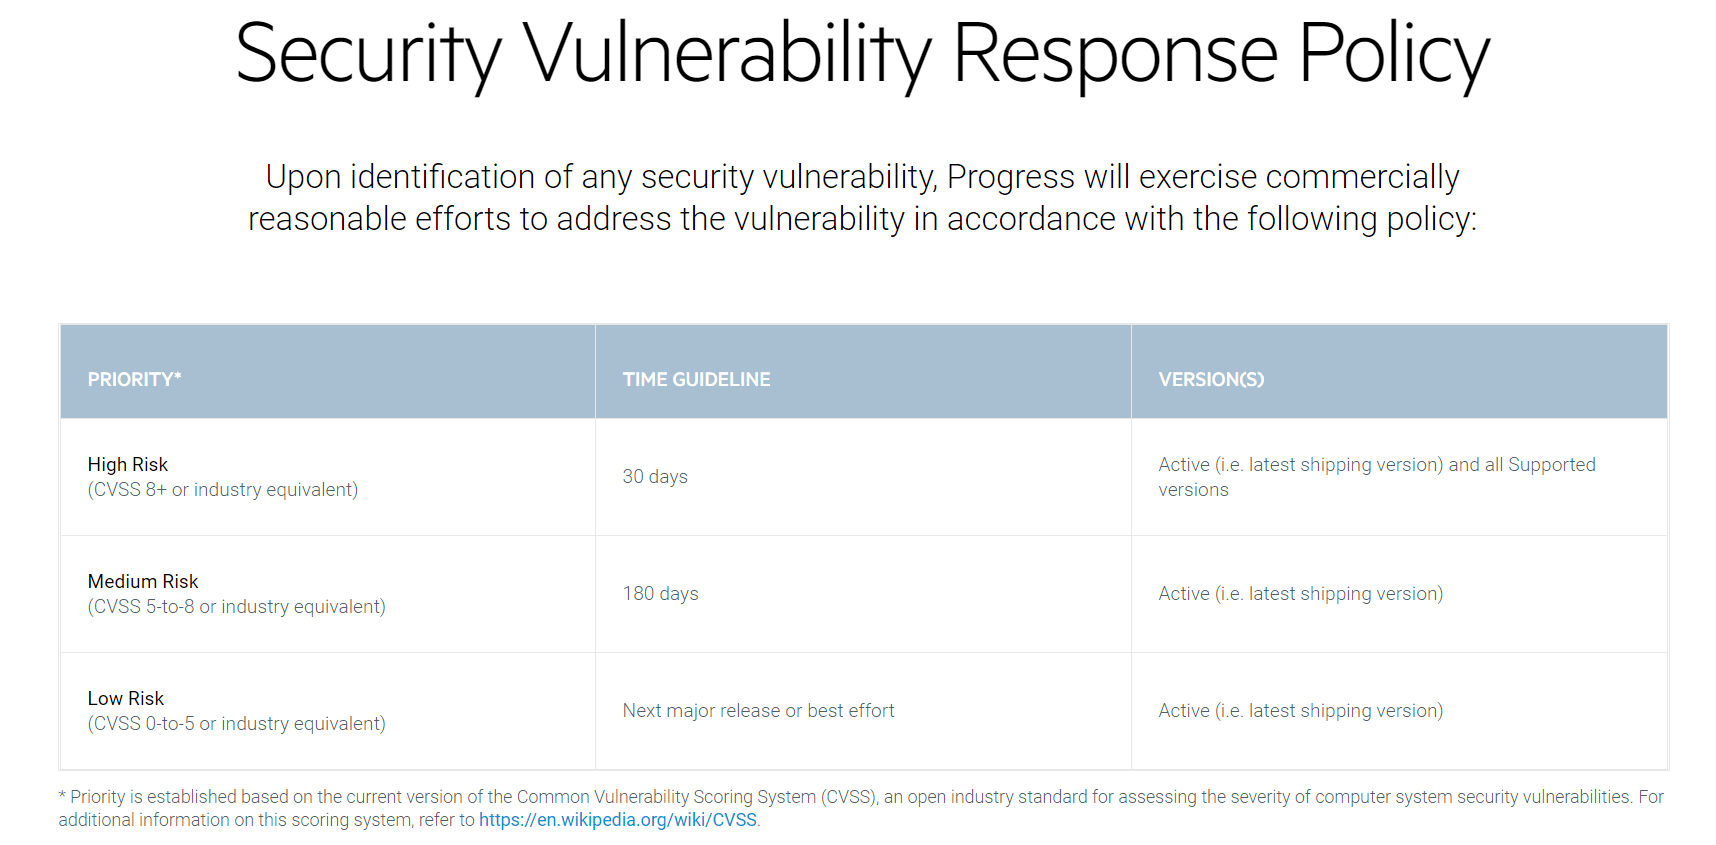 Security Vulnerability Response Policy